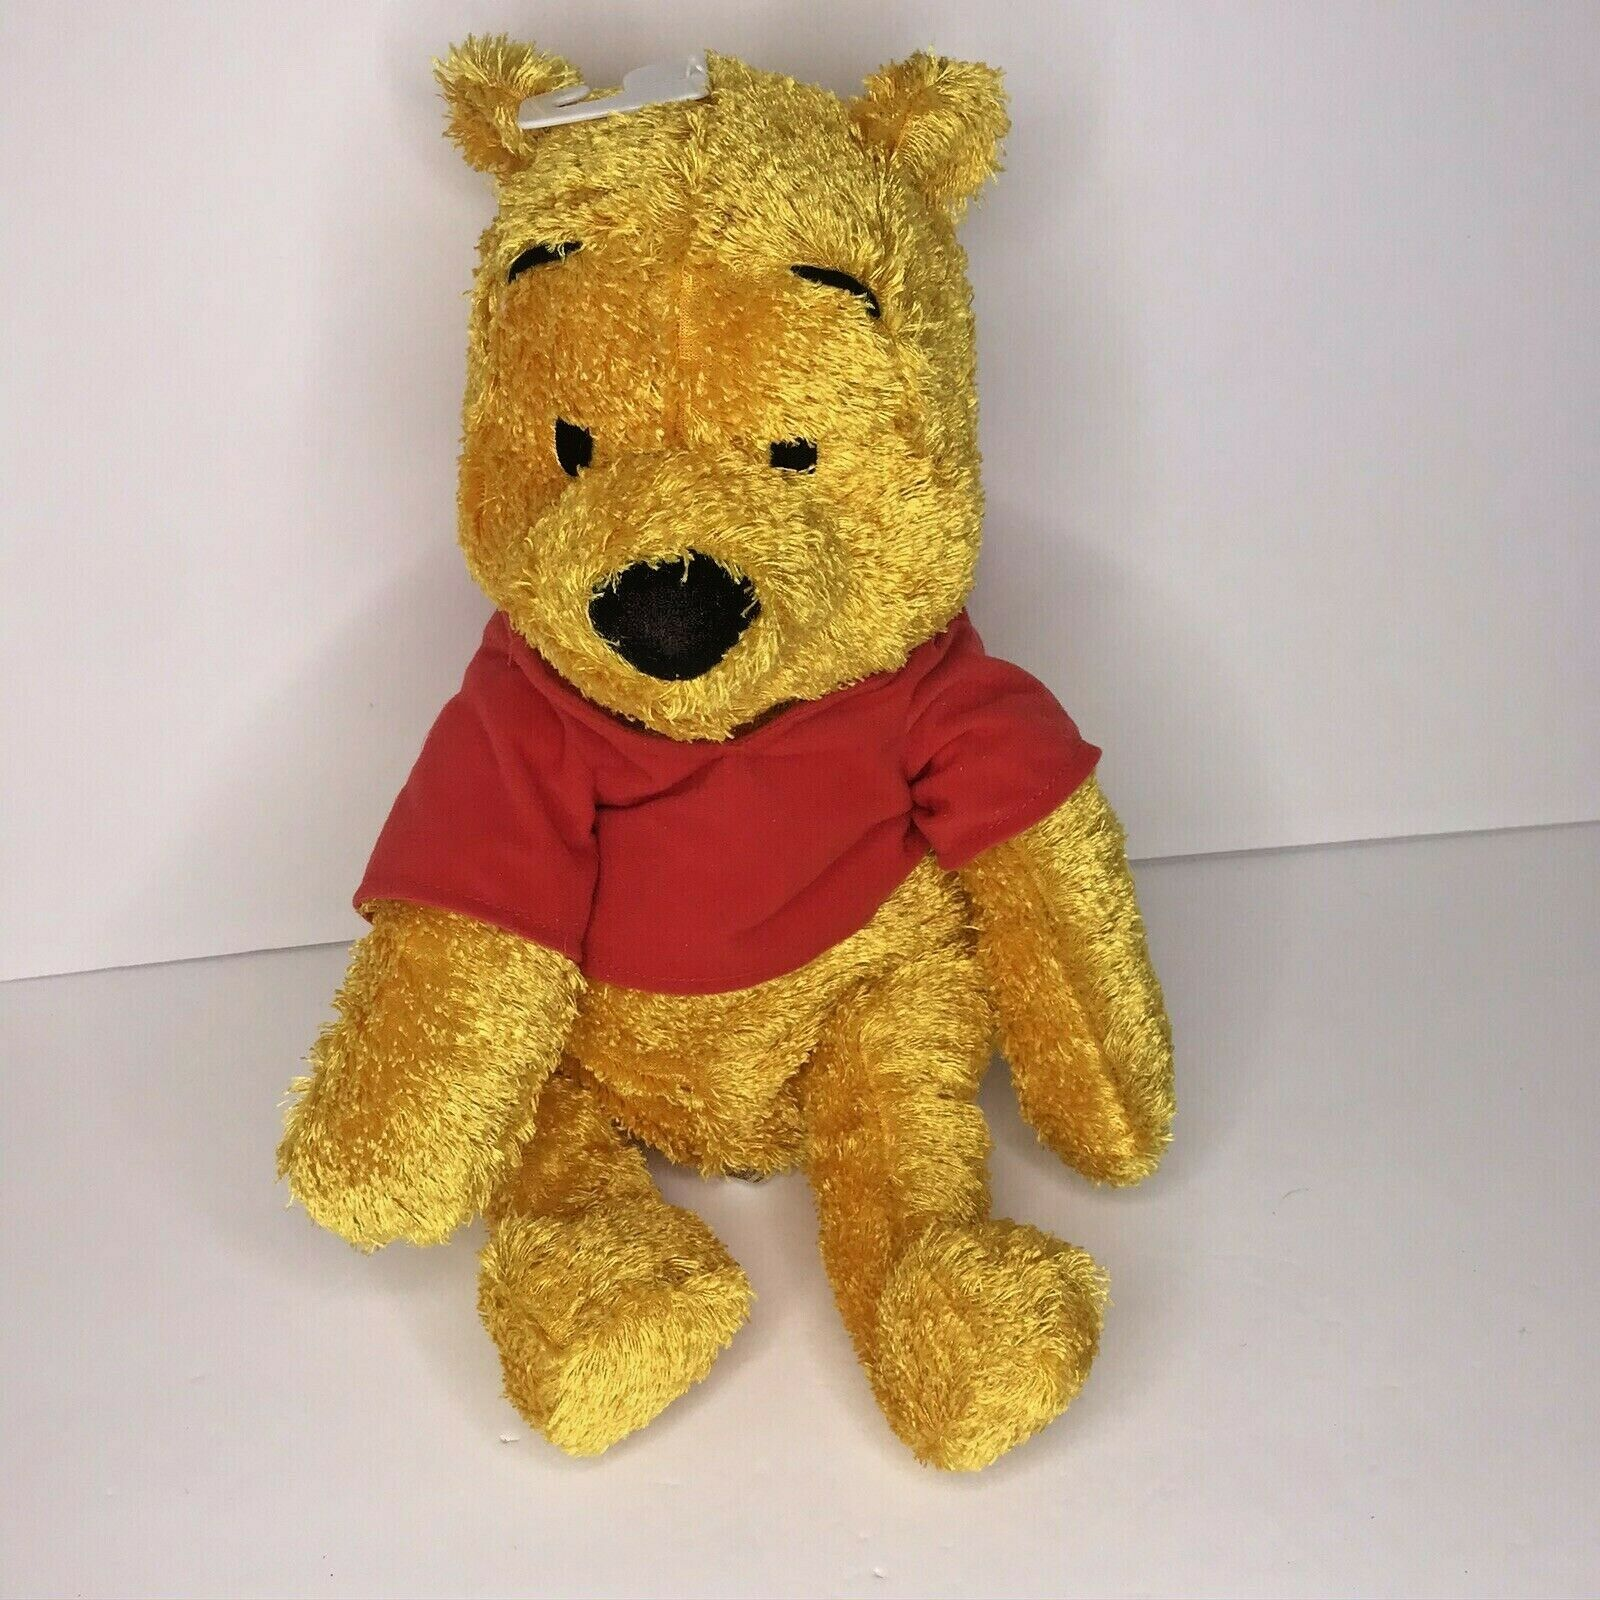 "Primary image for Mattel Winnie The Pooh Plush 20"" Red Shirt 2002 Shiny Fur Stuffed Animal"